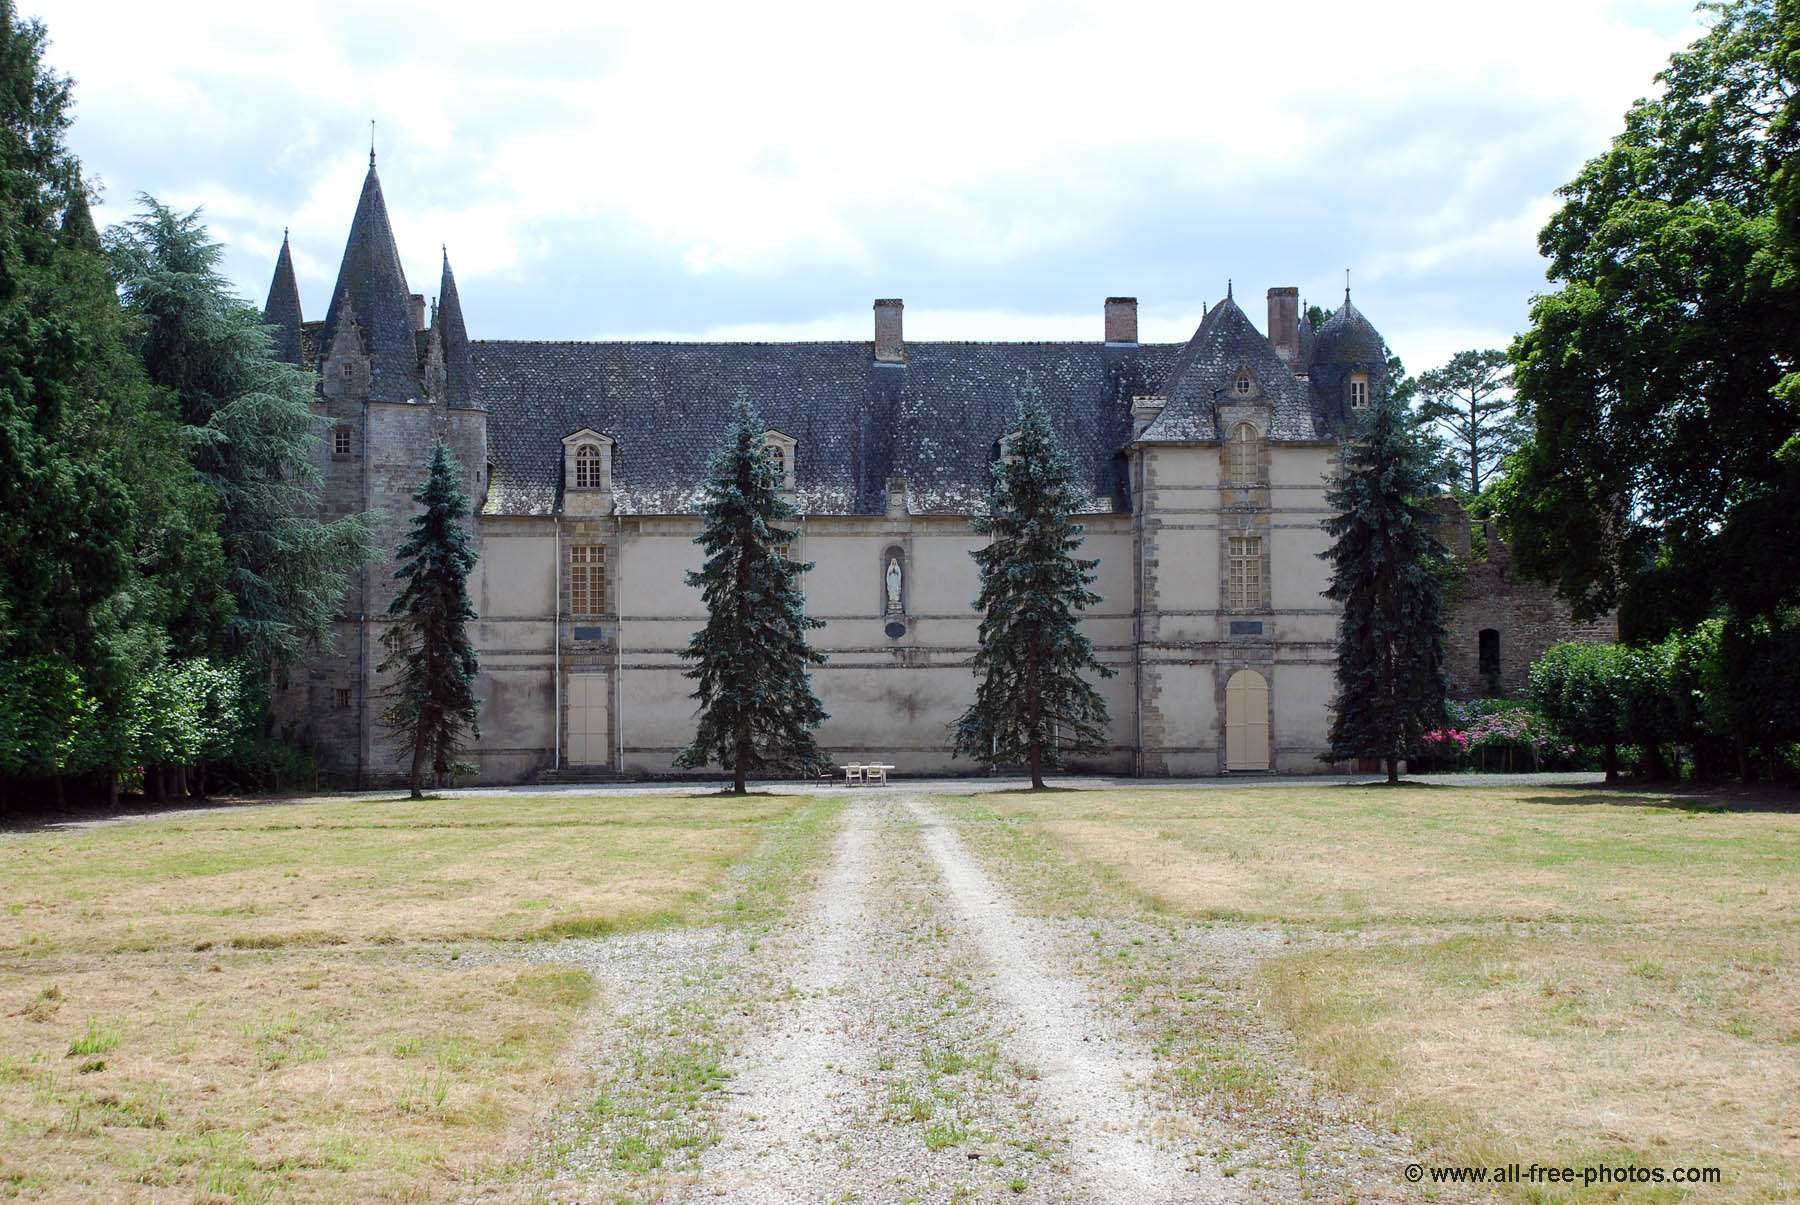 Castle of L'Espinay - France